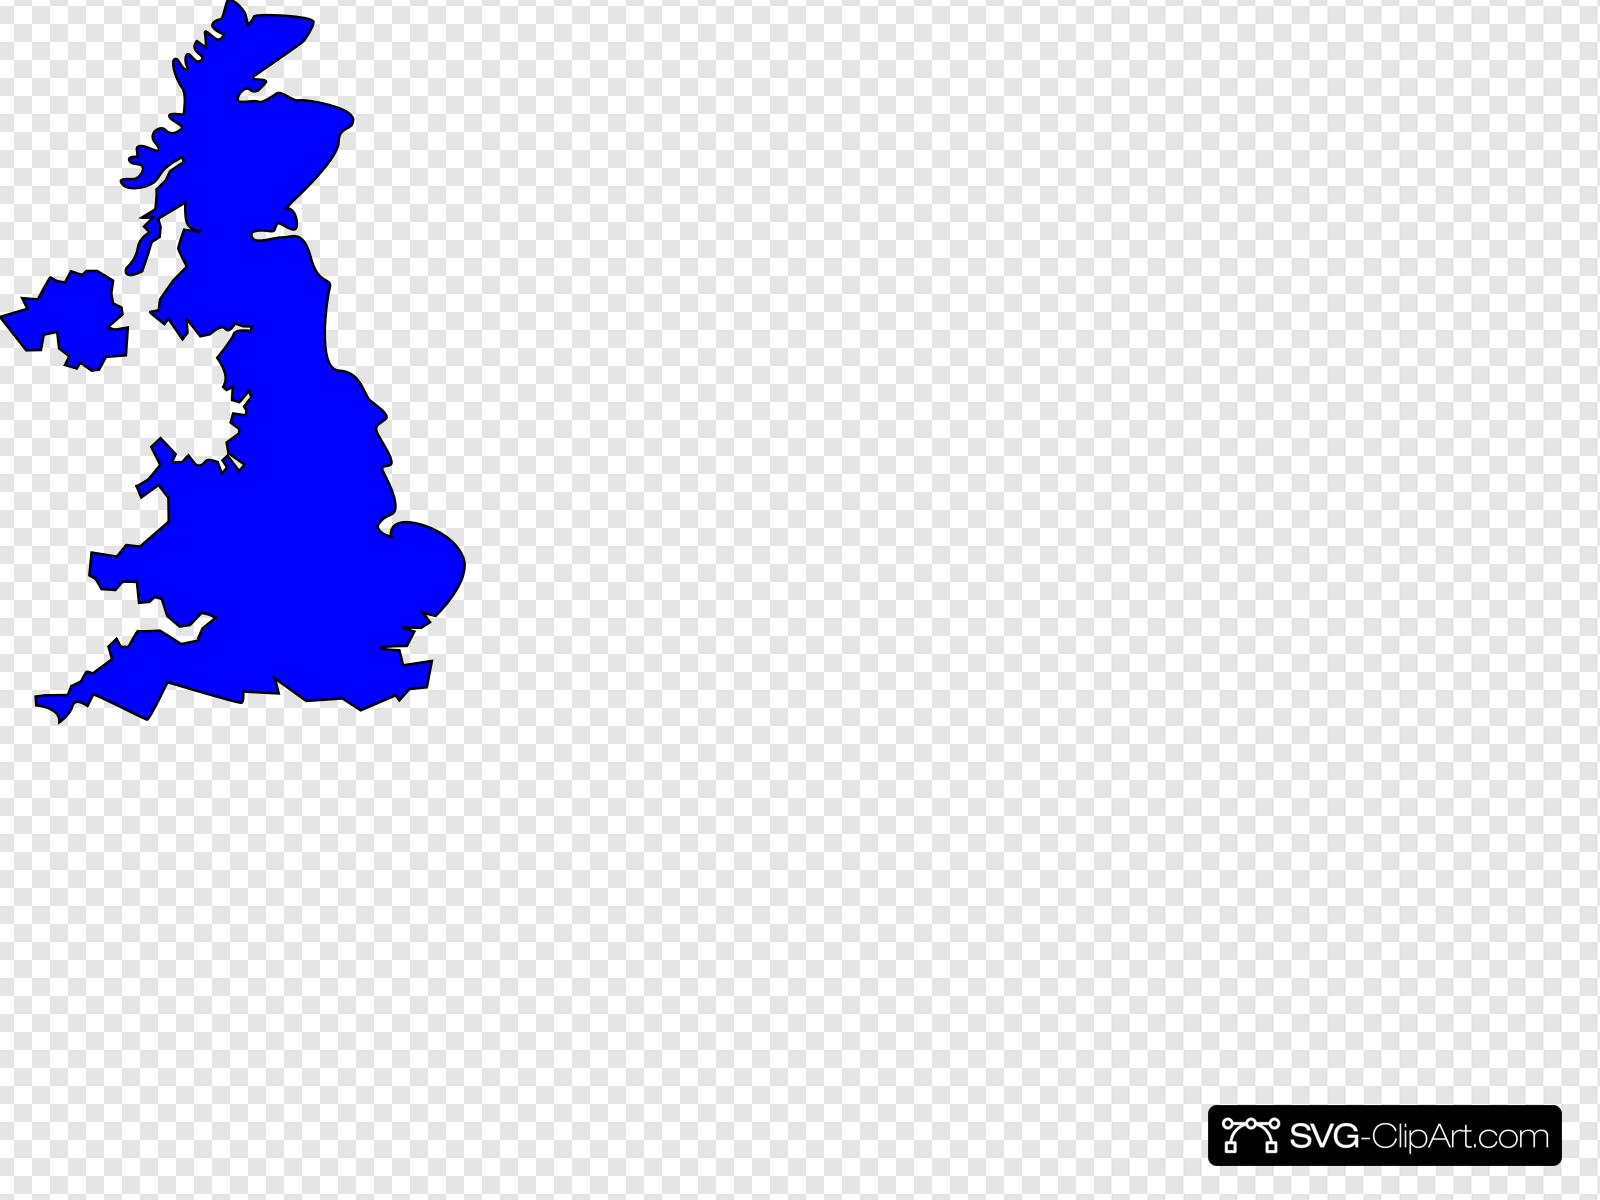 Gb Map Clip art, Icon and SVG.